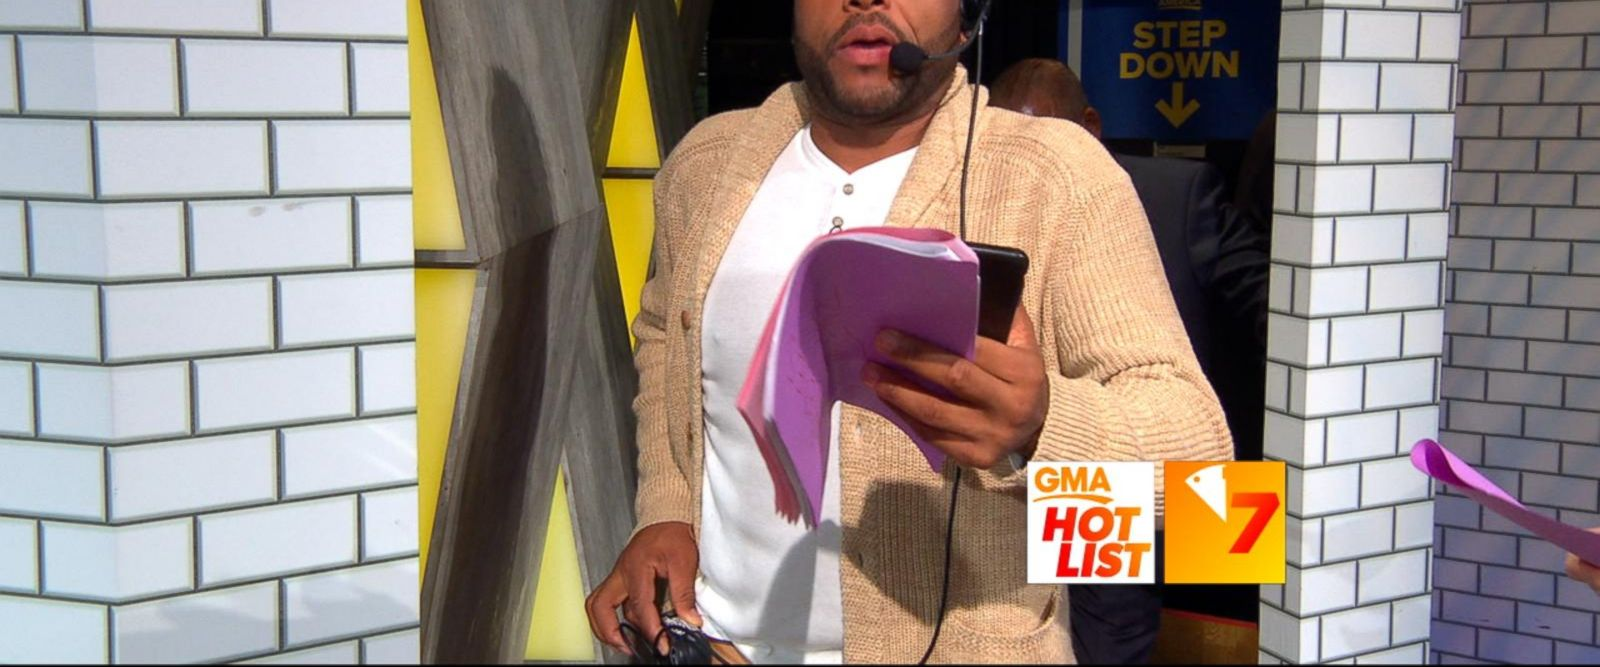 VIDEO: 'GMA' Hot List: Anthony Anderson and Kristen Bell 'produce' 'GMA'